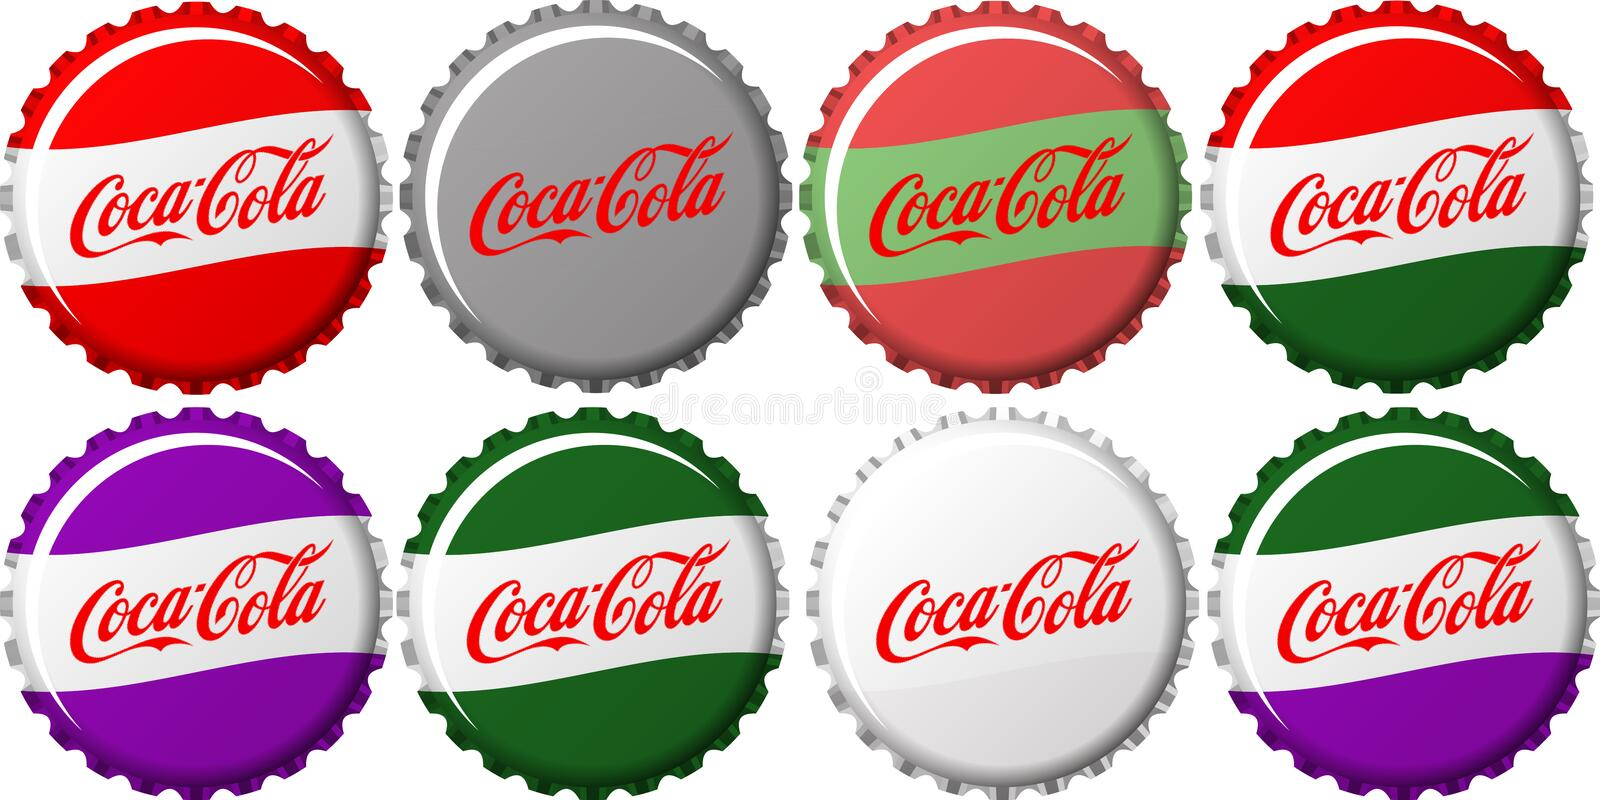 Coca Cola Caps royaltyfri illustrationer